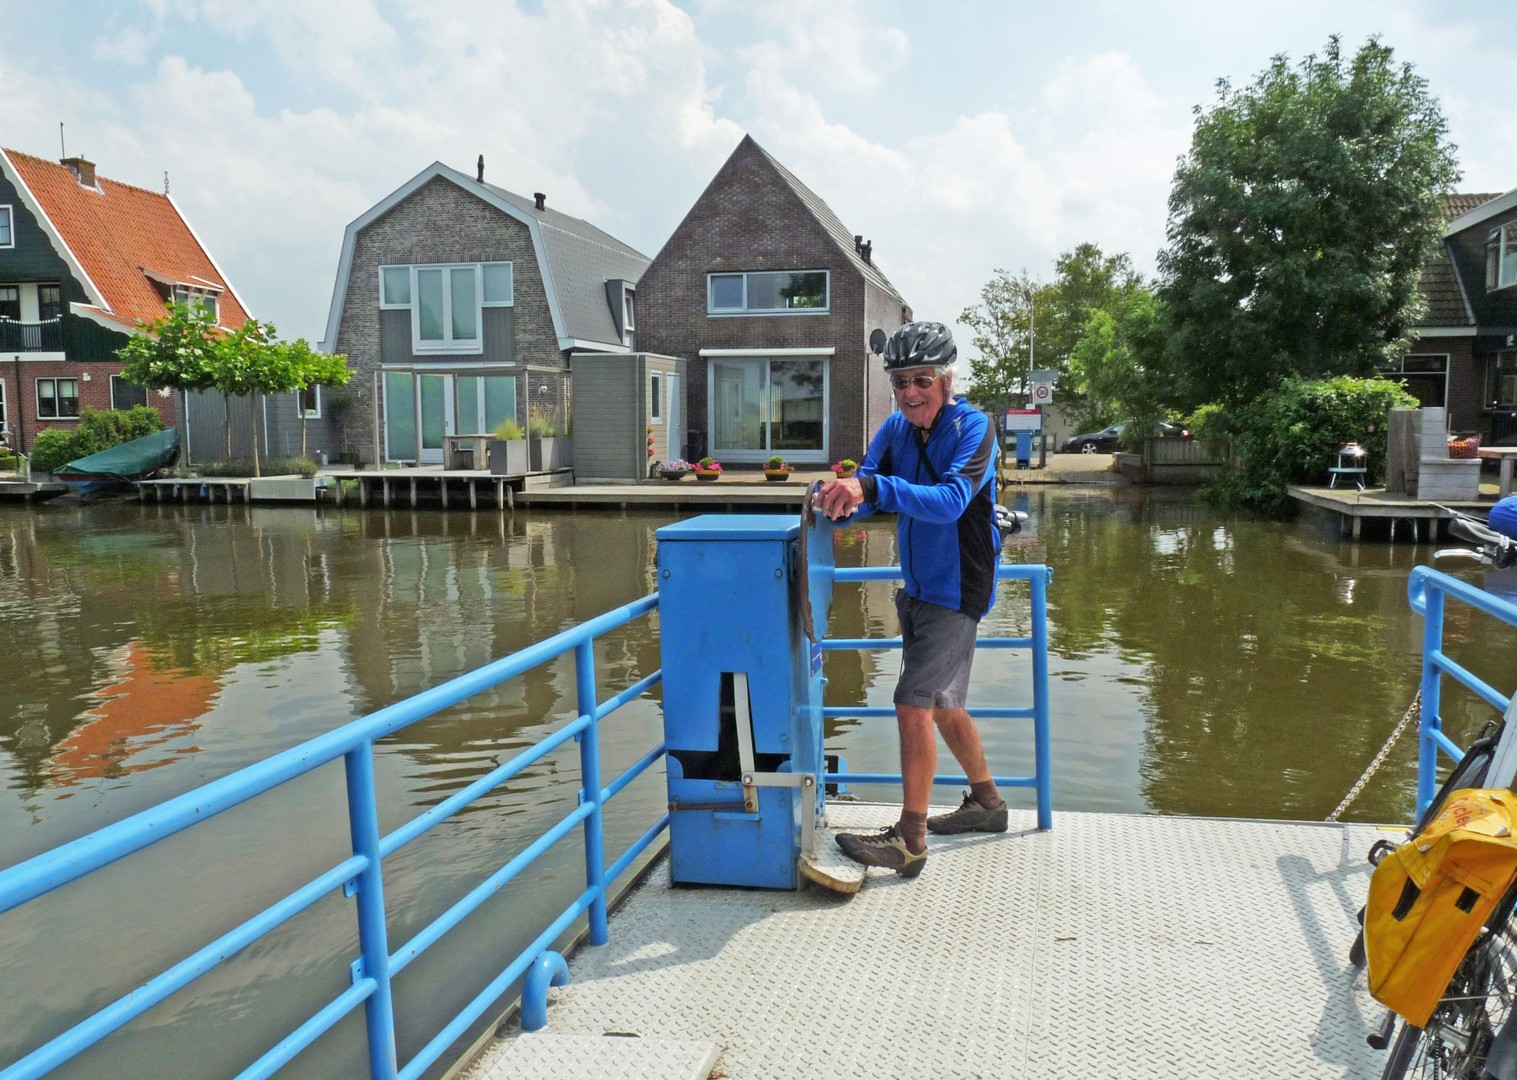 amsterdam-windmills-and-golden-beaches-bike-and-barge-holiday-in-holland.jpg - Holland - Windmills and Golden Beaches - Bike and Barge Holiday - Family Cycling